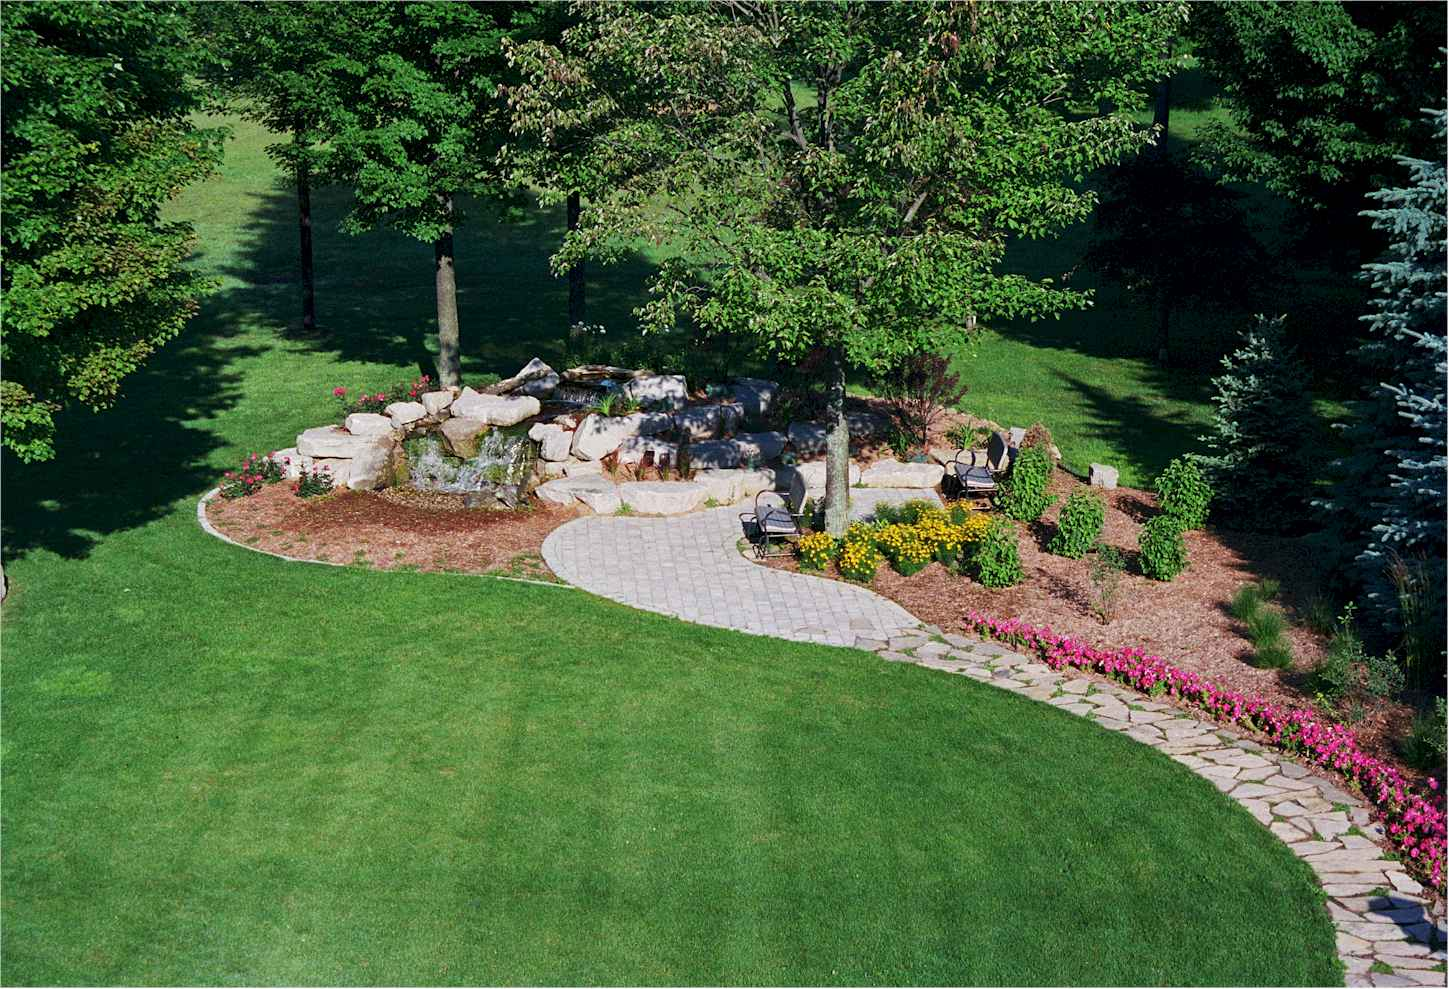 5 landscaping ideas to wow the neighbors for Ideas for landscaping large areas